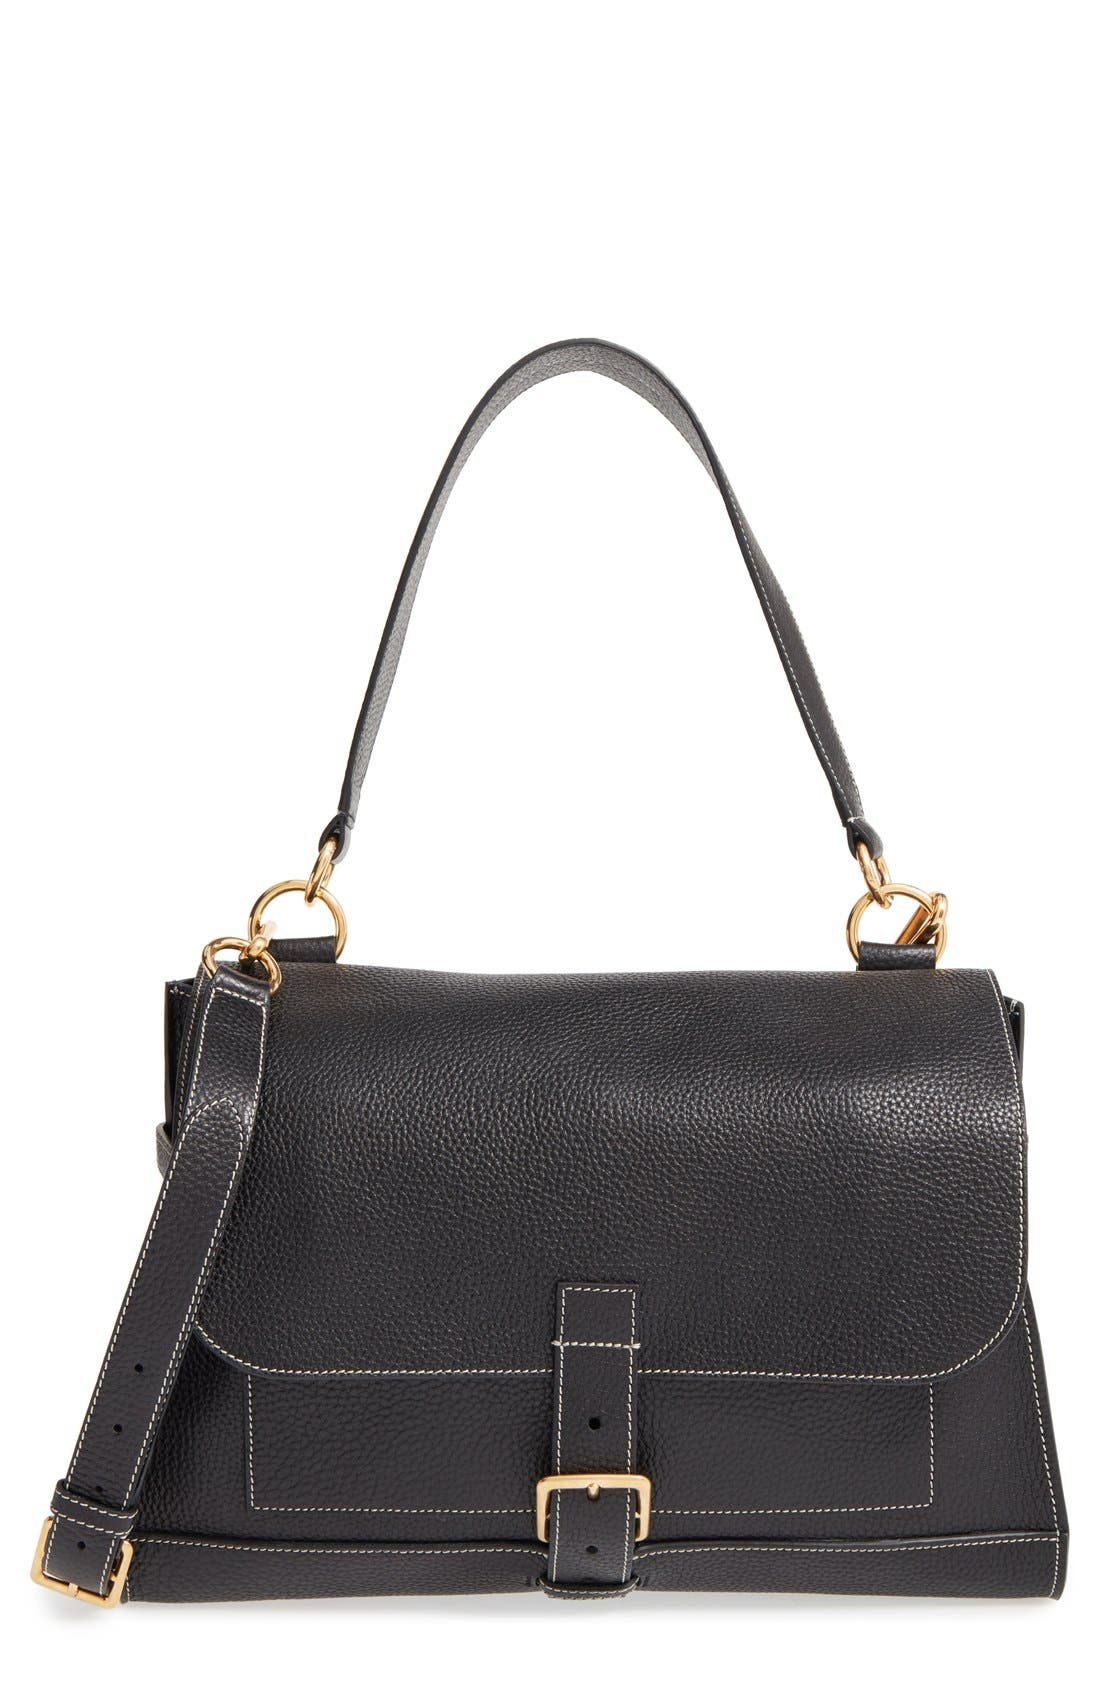 'Small Buckle' Leather Shoulder Bag,                             Main thumbnail 1, color,                             Black